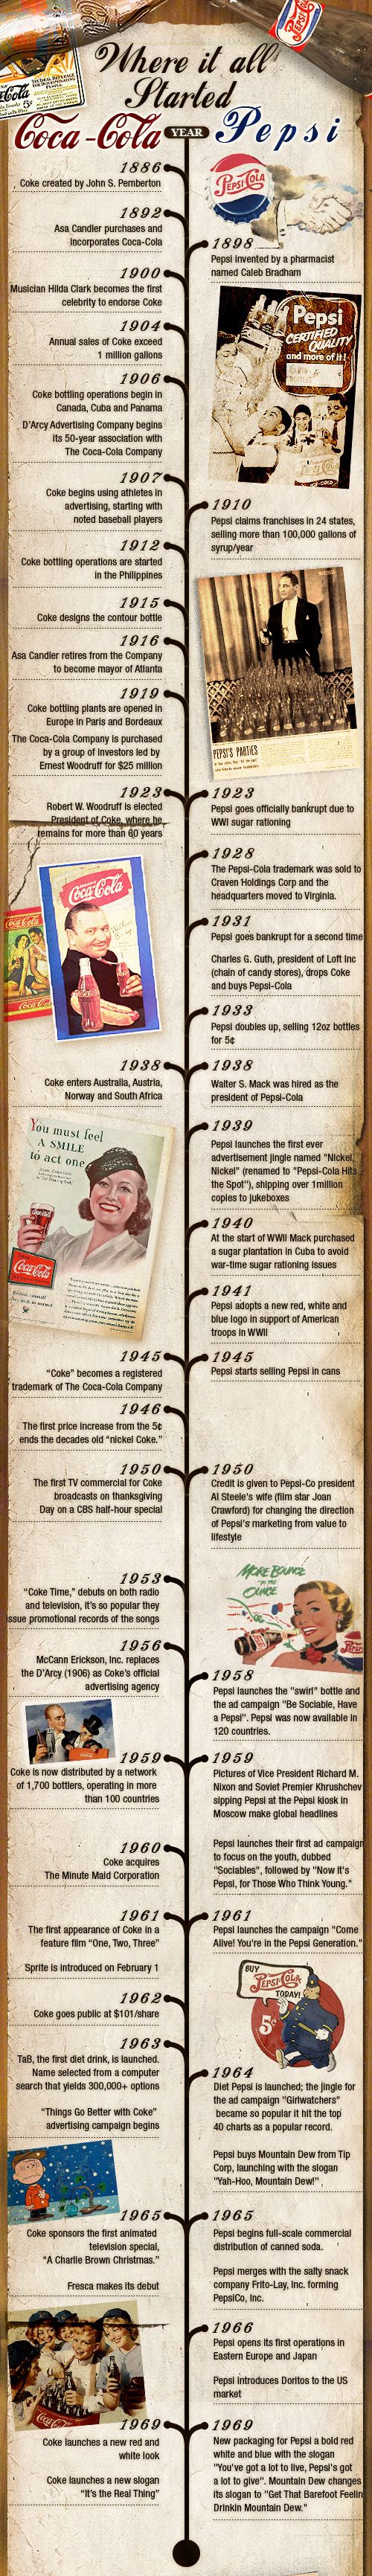 top ideas about coca cola logo logo coca where it all started coca cola pepsi